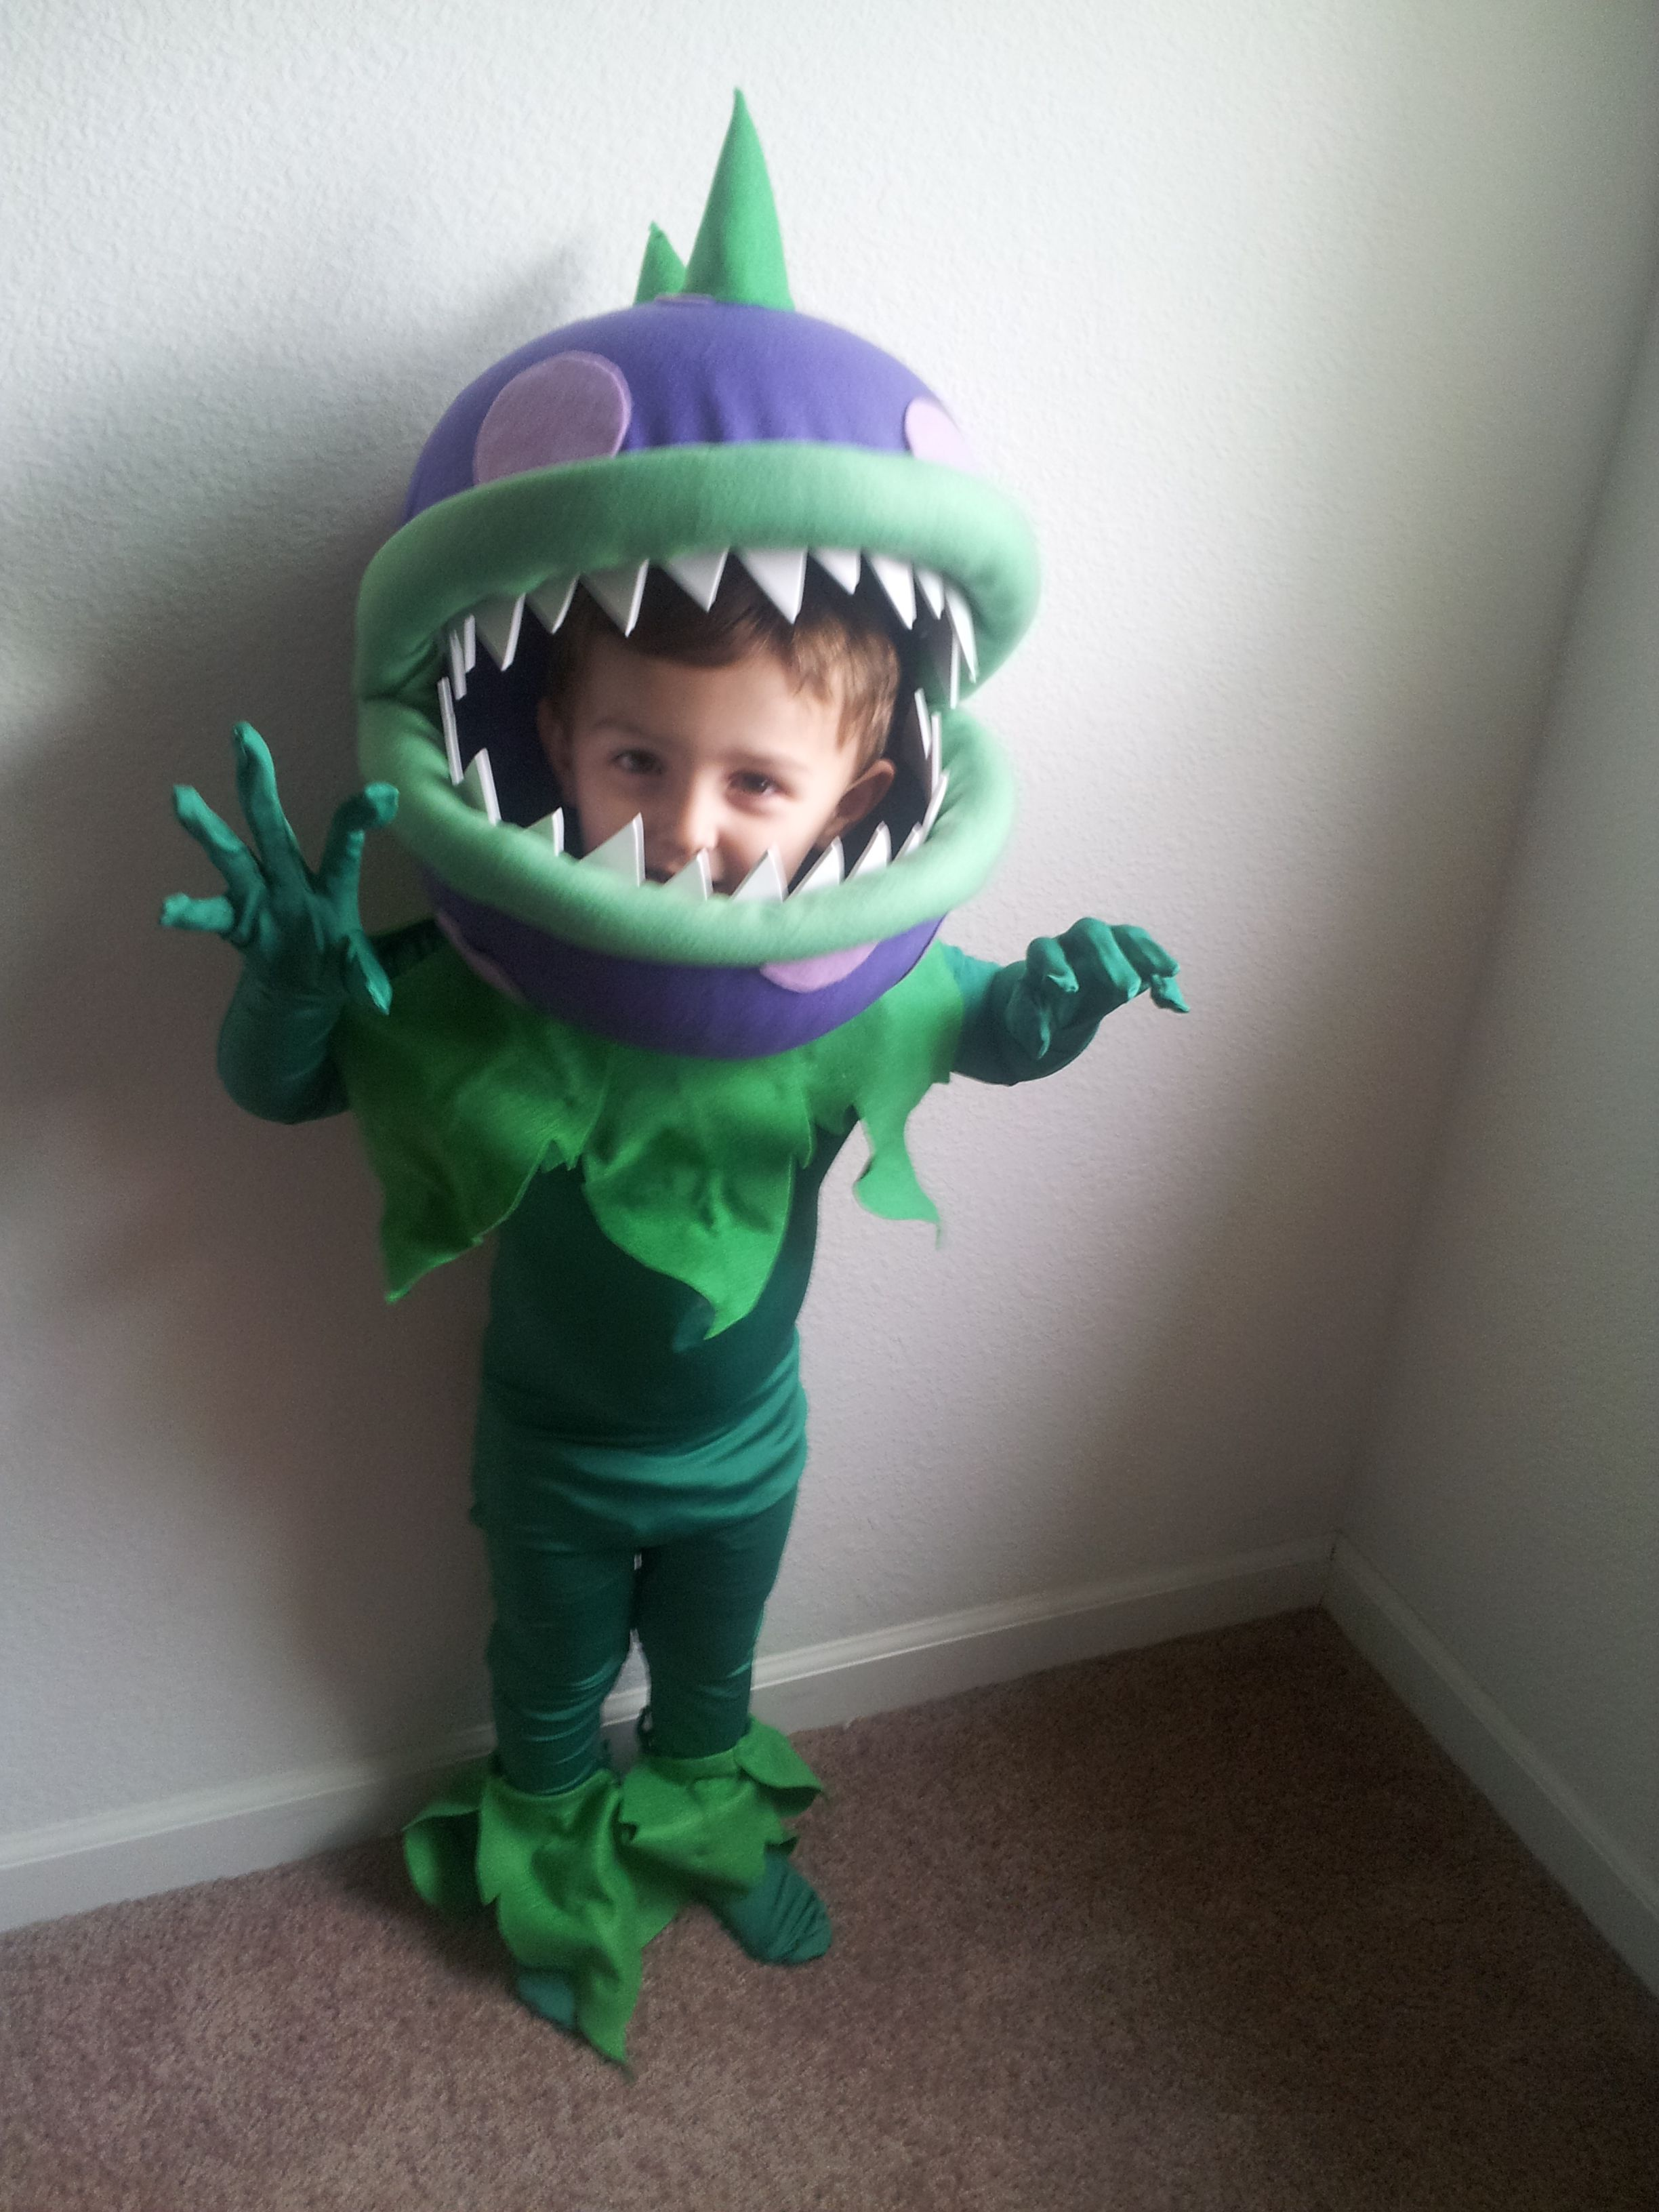 Plants vs Zombies Chomper costume. Made from two plastic bowls